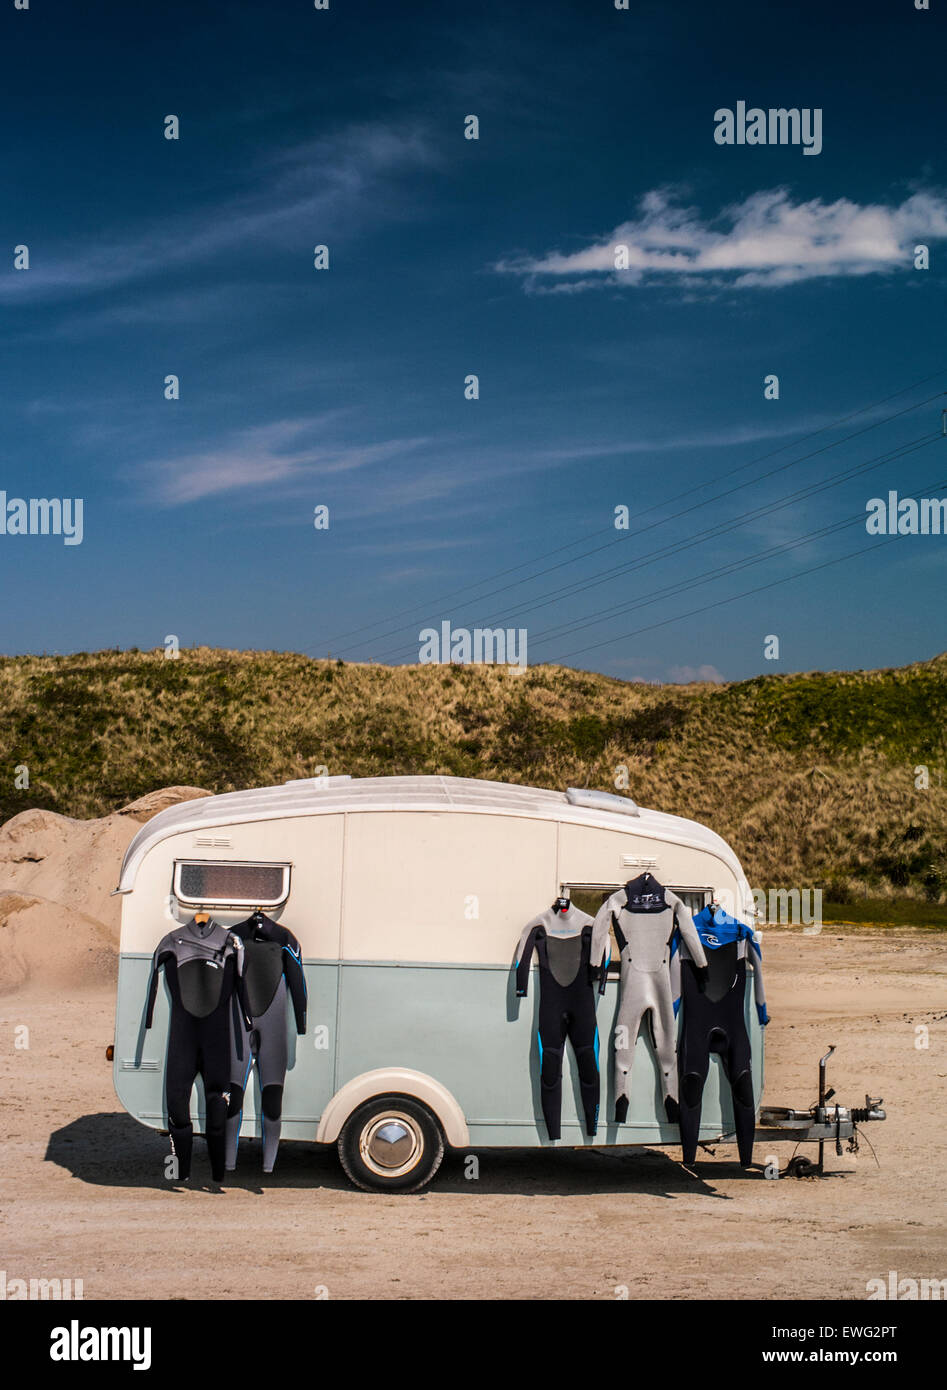 Wetsuits hanging on the side of a retro caravan with grasses and vivid blue sky in the distance. - Stock Image